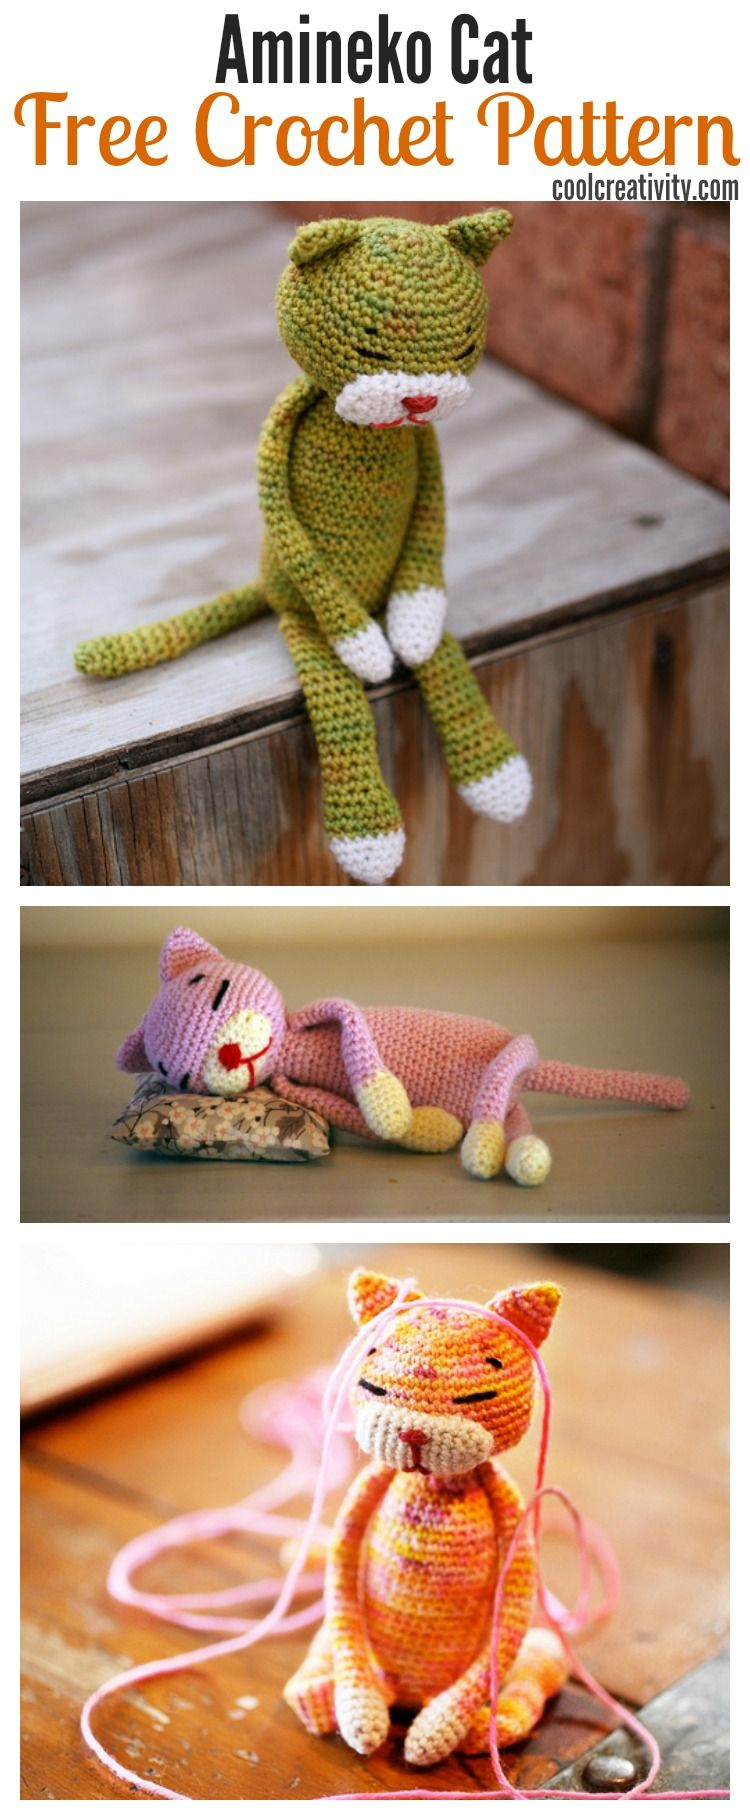 Crochet amineko cat with free pattern free pattern crochet and cat today we are going to present the free pattern for crochet amineko cat amineko is the name of a cat in the story book this cat has so much personality bankloansurffo Image collections